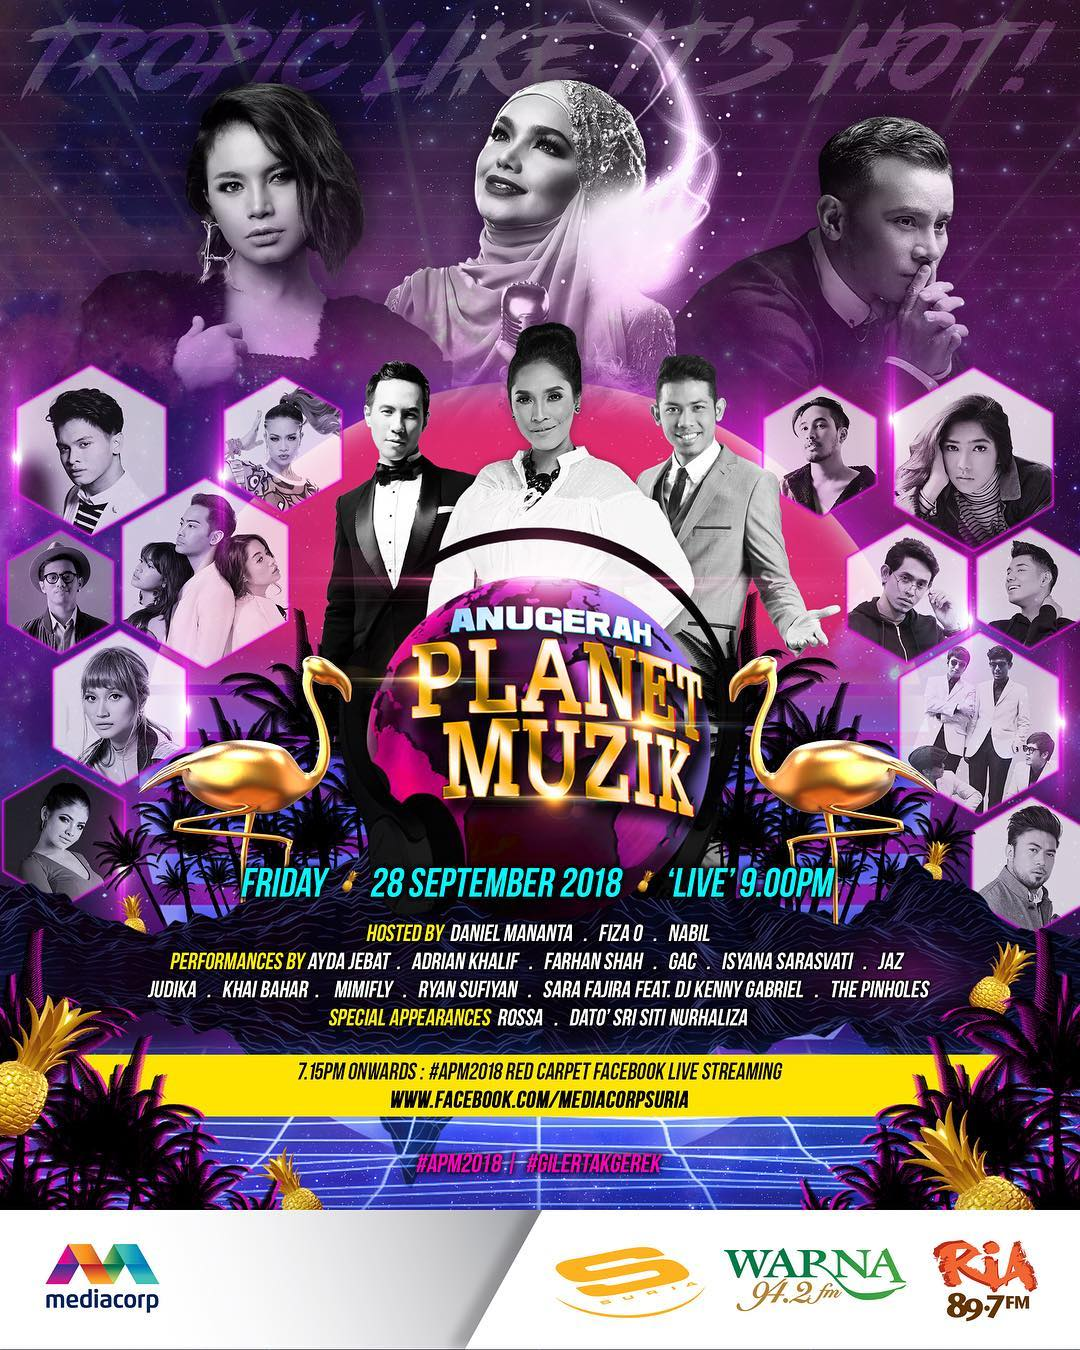 Anugerah Planet Muzik 2018 Roll-of-Honour